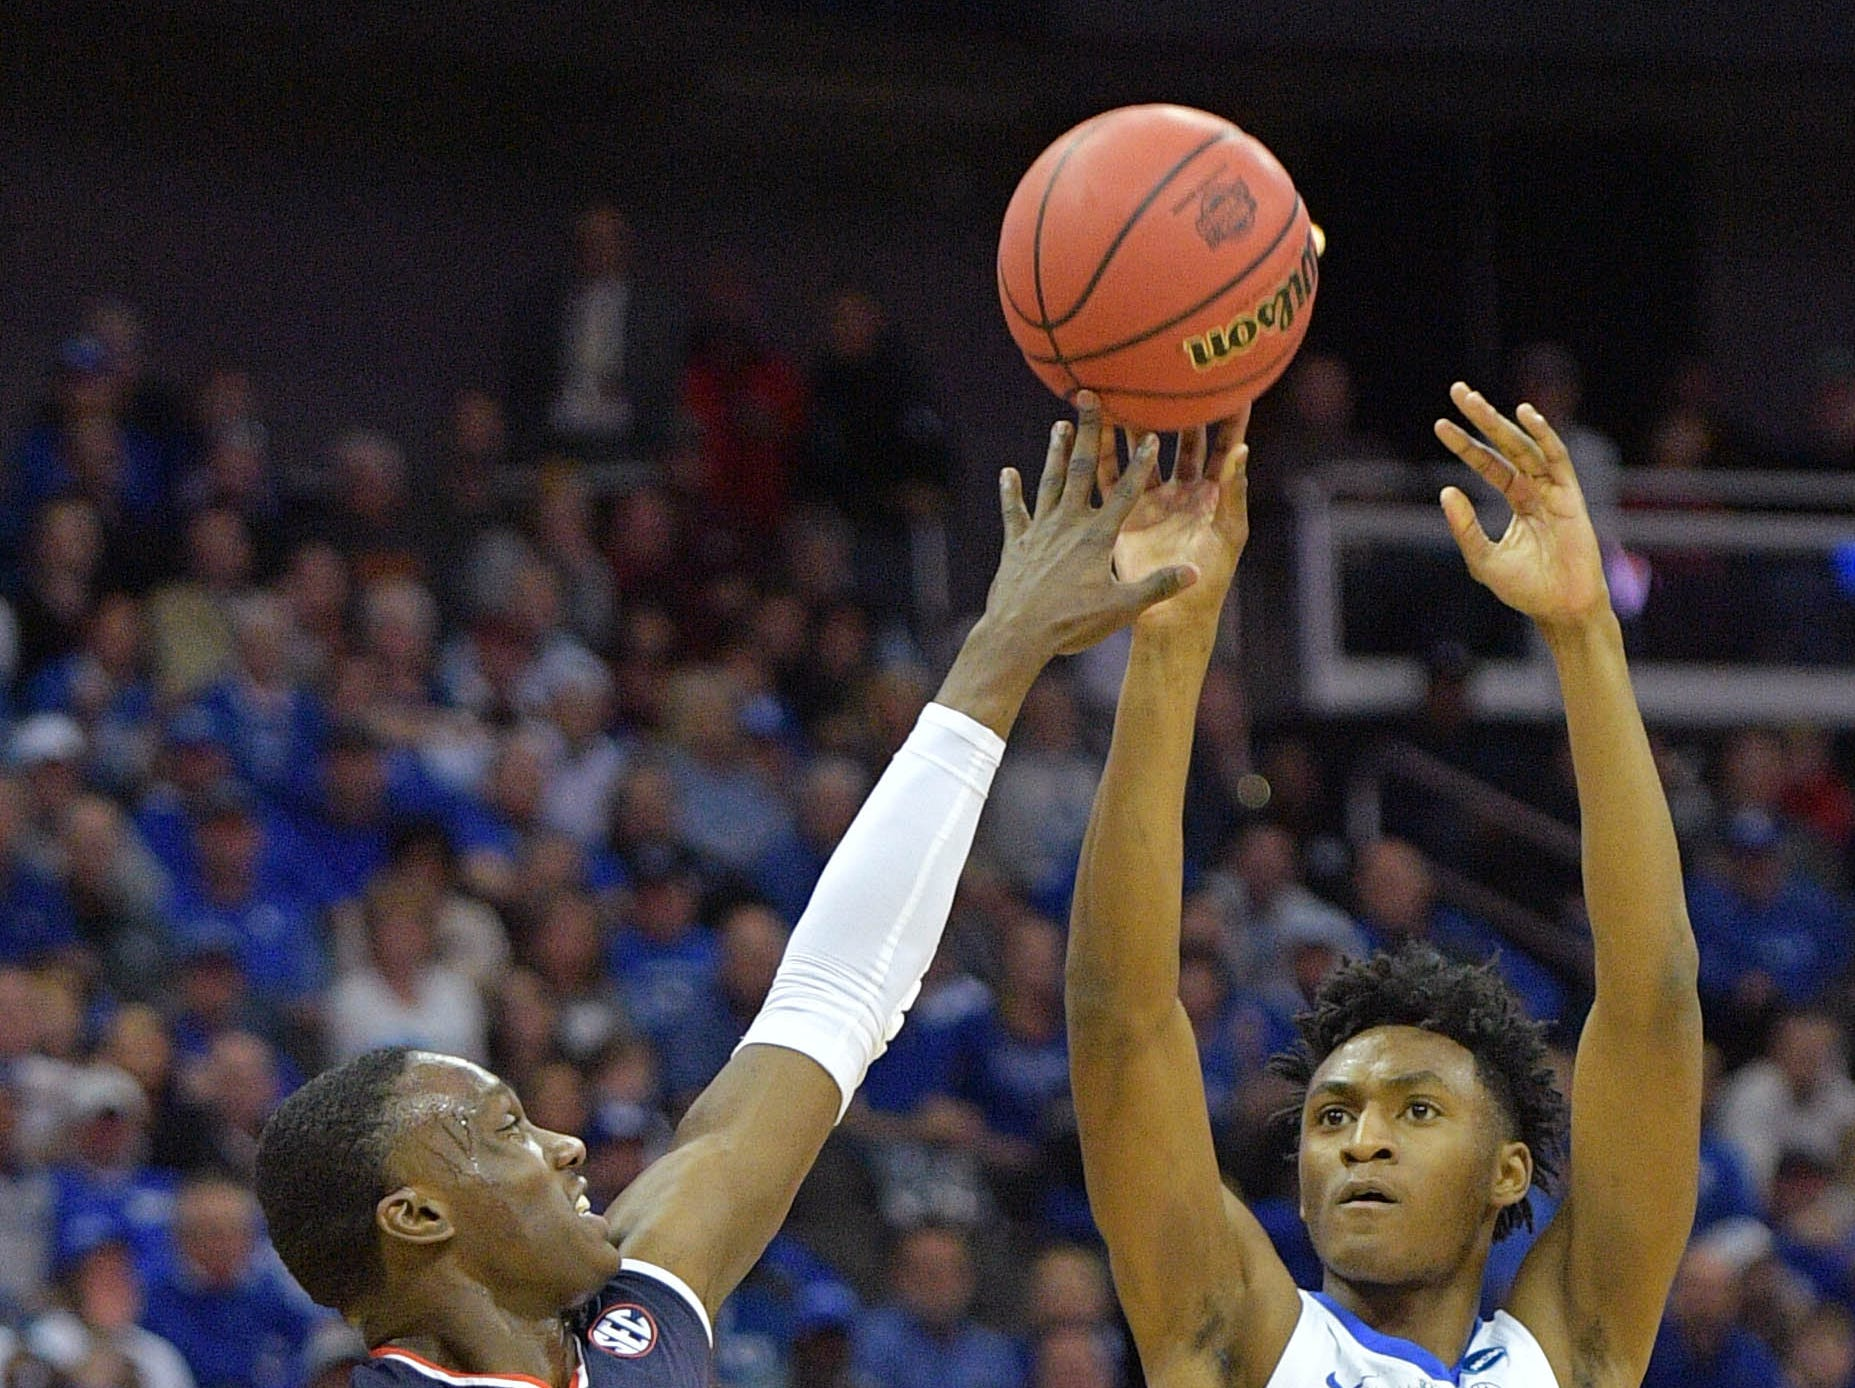 Mar 31, 2019; Kansas City, MO, United States; Kentucky Wildcats guard Immanuel Quickley (5) shoots over Auburn Tigers guard Jared Harper (1) during the first half in the championship game of the midwest regional of the 2019 NCAA Tournament at Sprint Center. Mandatory Credit: Denny Medley-USA TODAY Sports